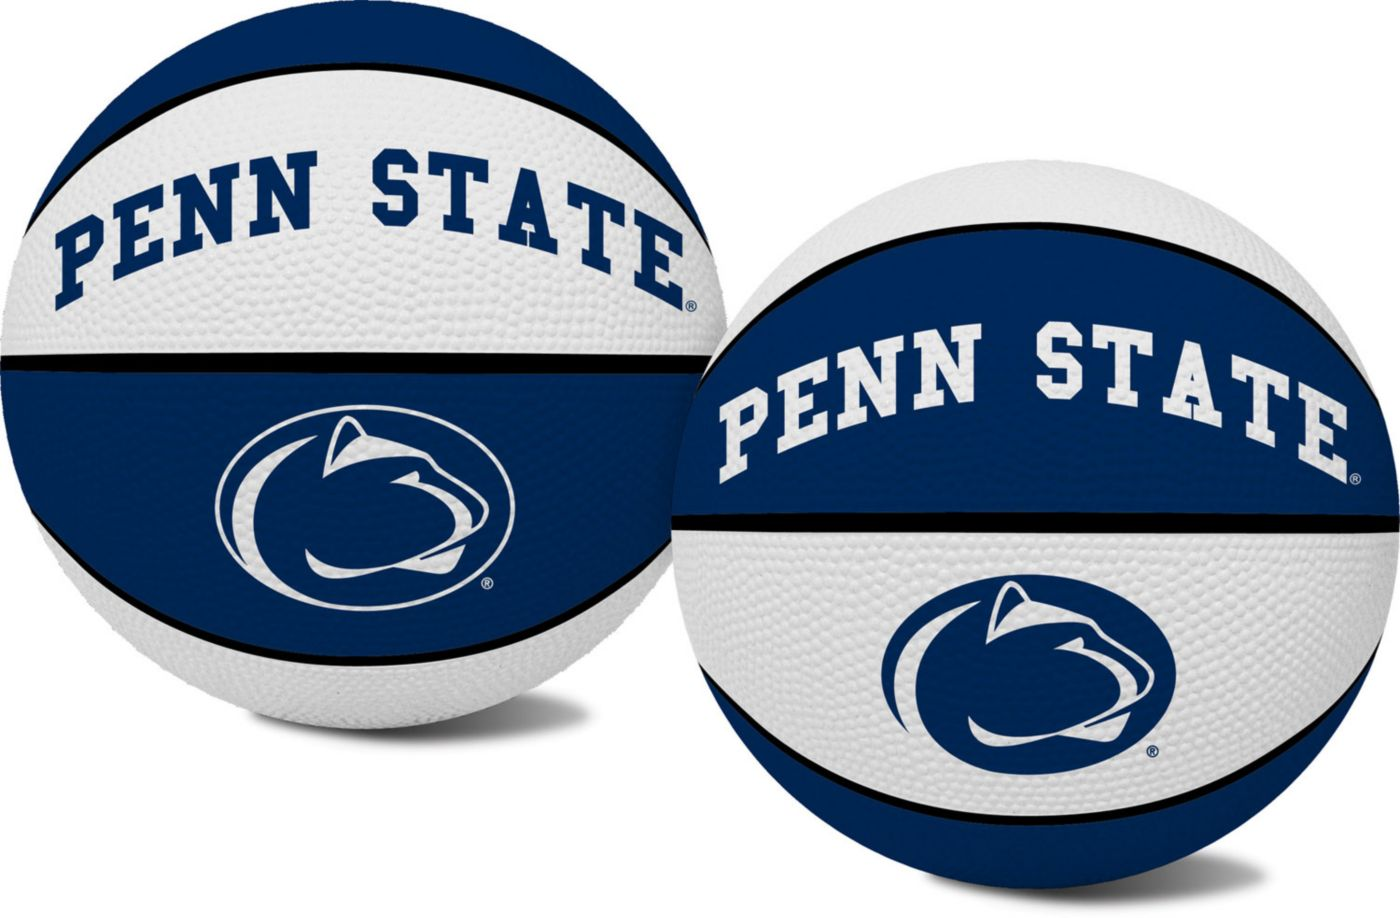 Rawlings Penn State Nittany Lions Alley Oop Youth-Sized Basketball